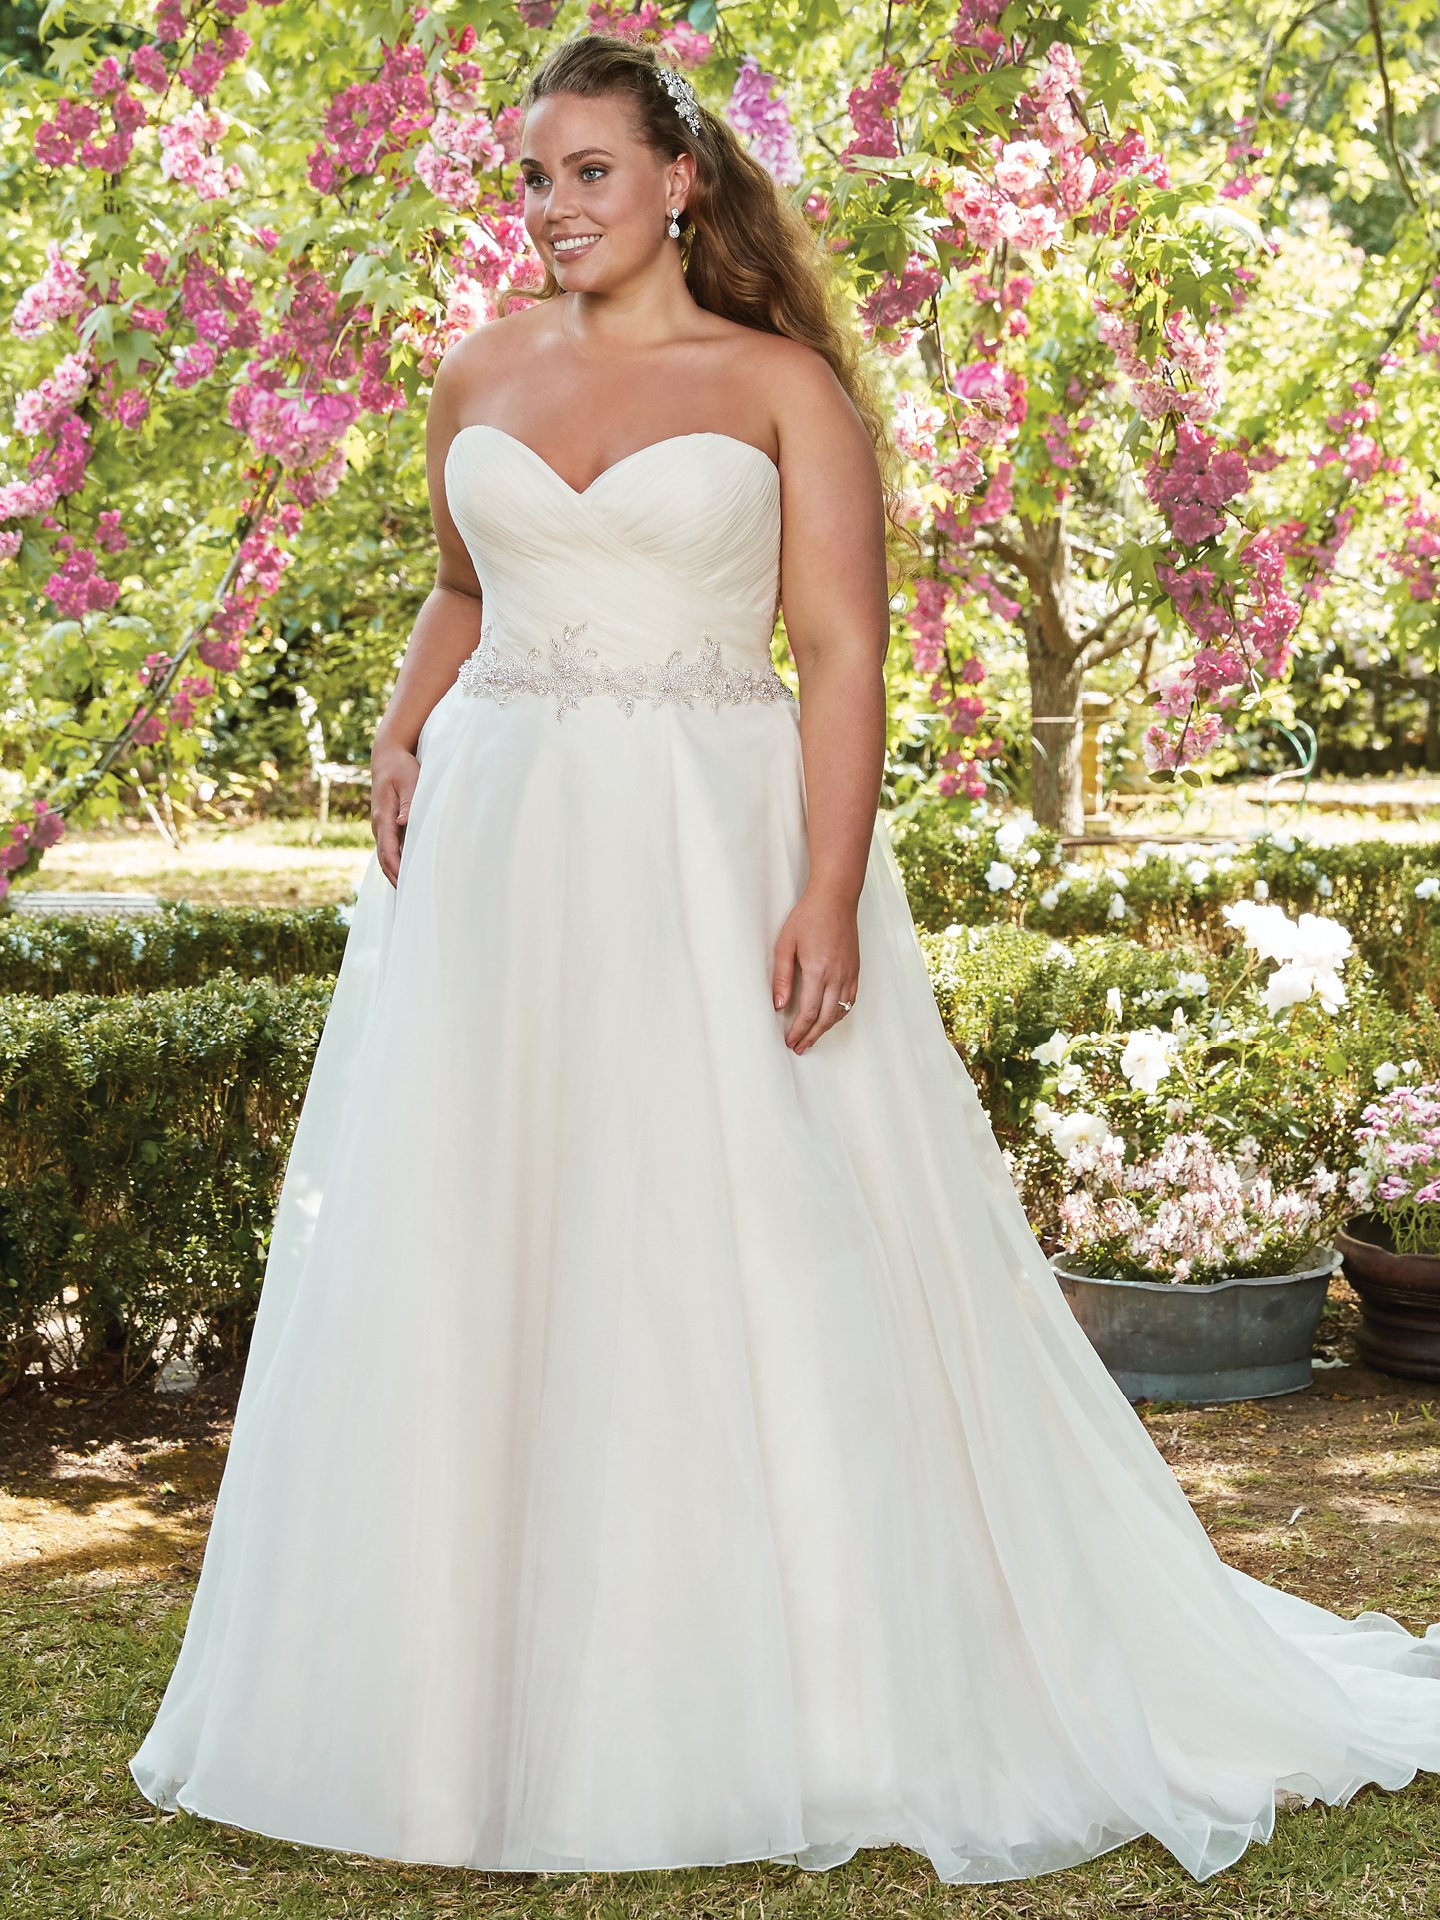 Wedding Dress Color Guide: Shades of White for Every Bride. White wedding dresses Rebecca Ingram - Arden